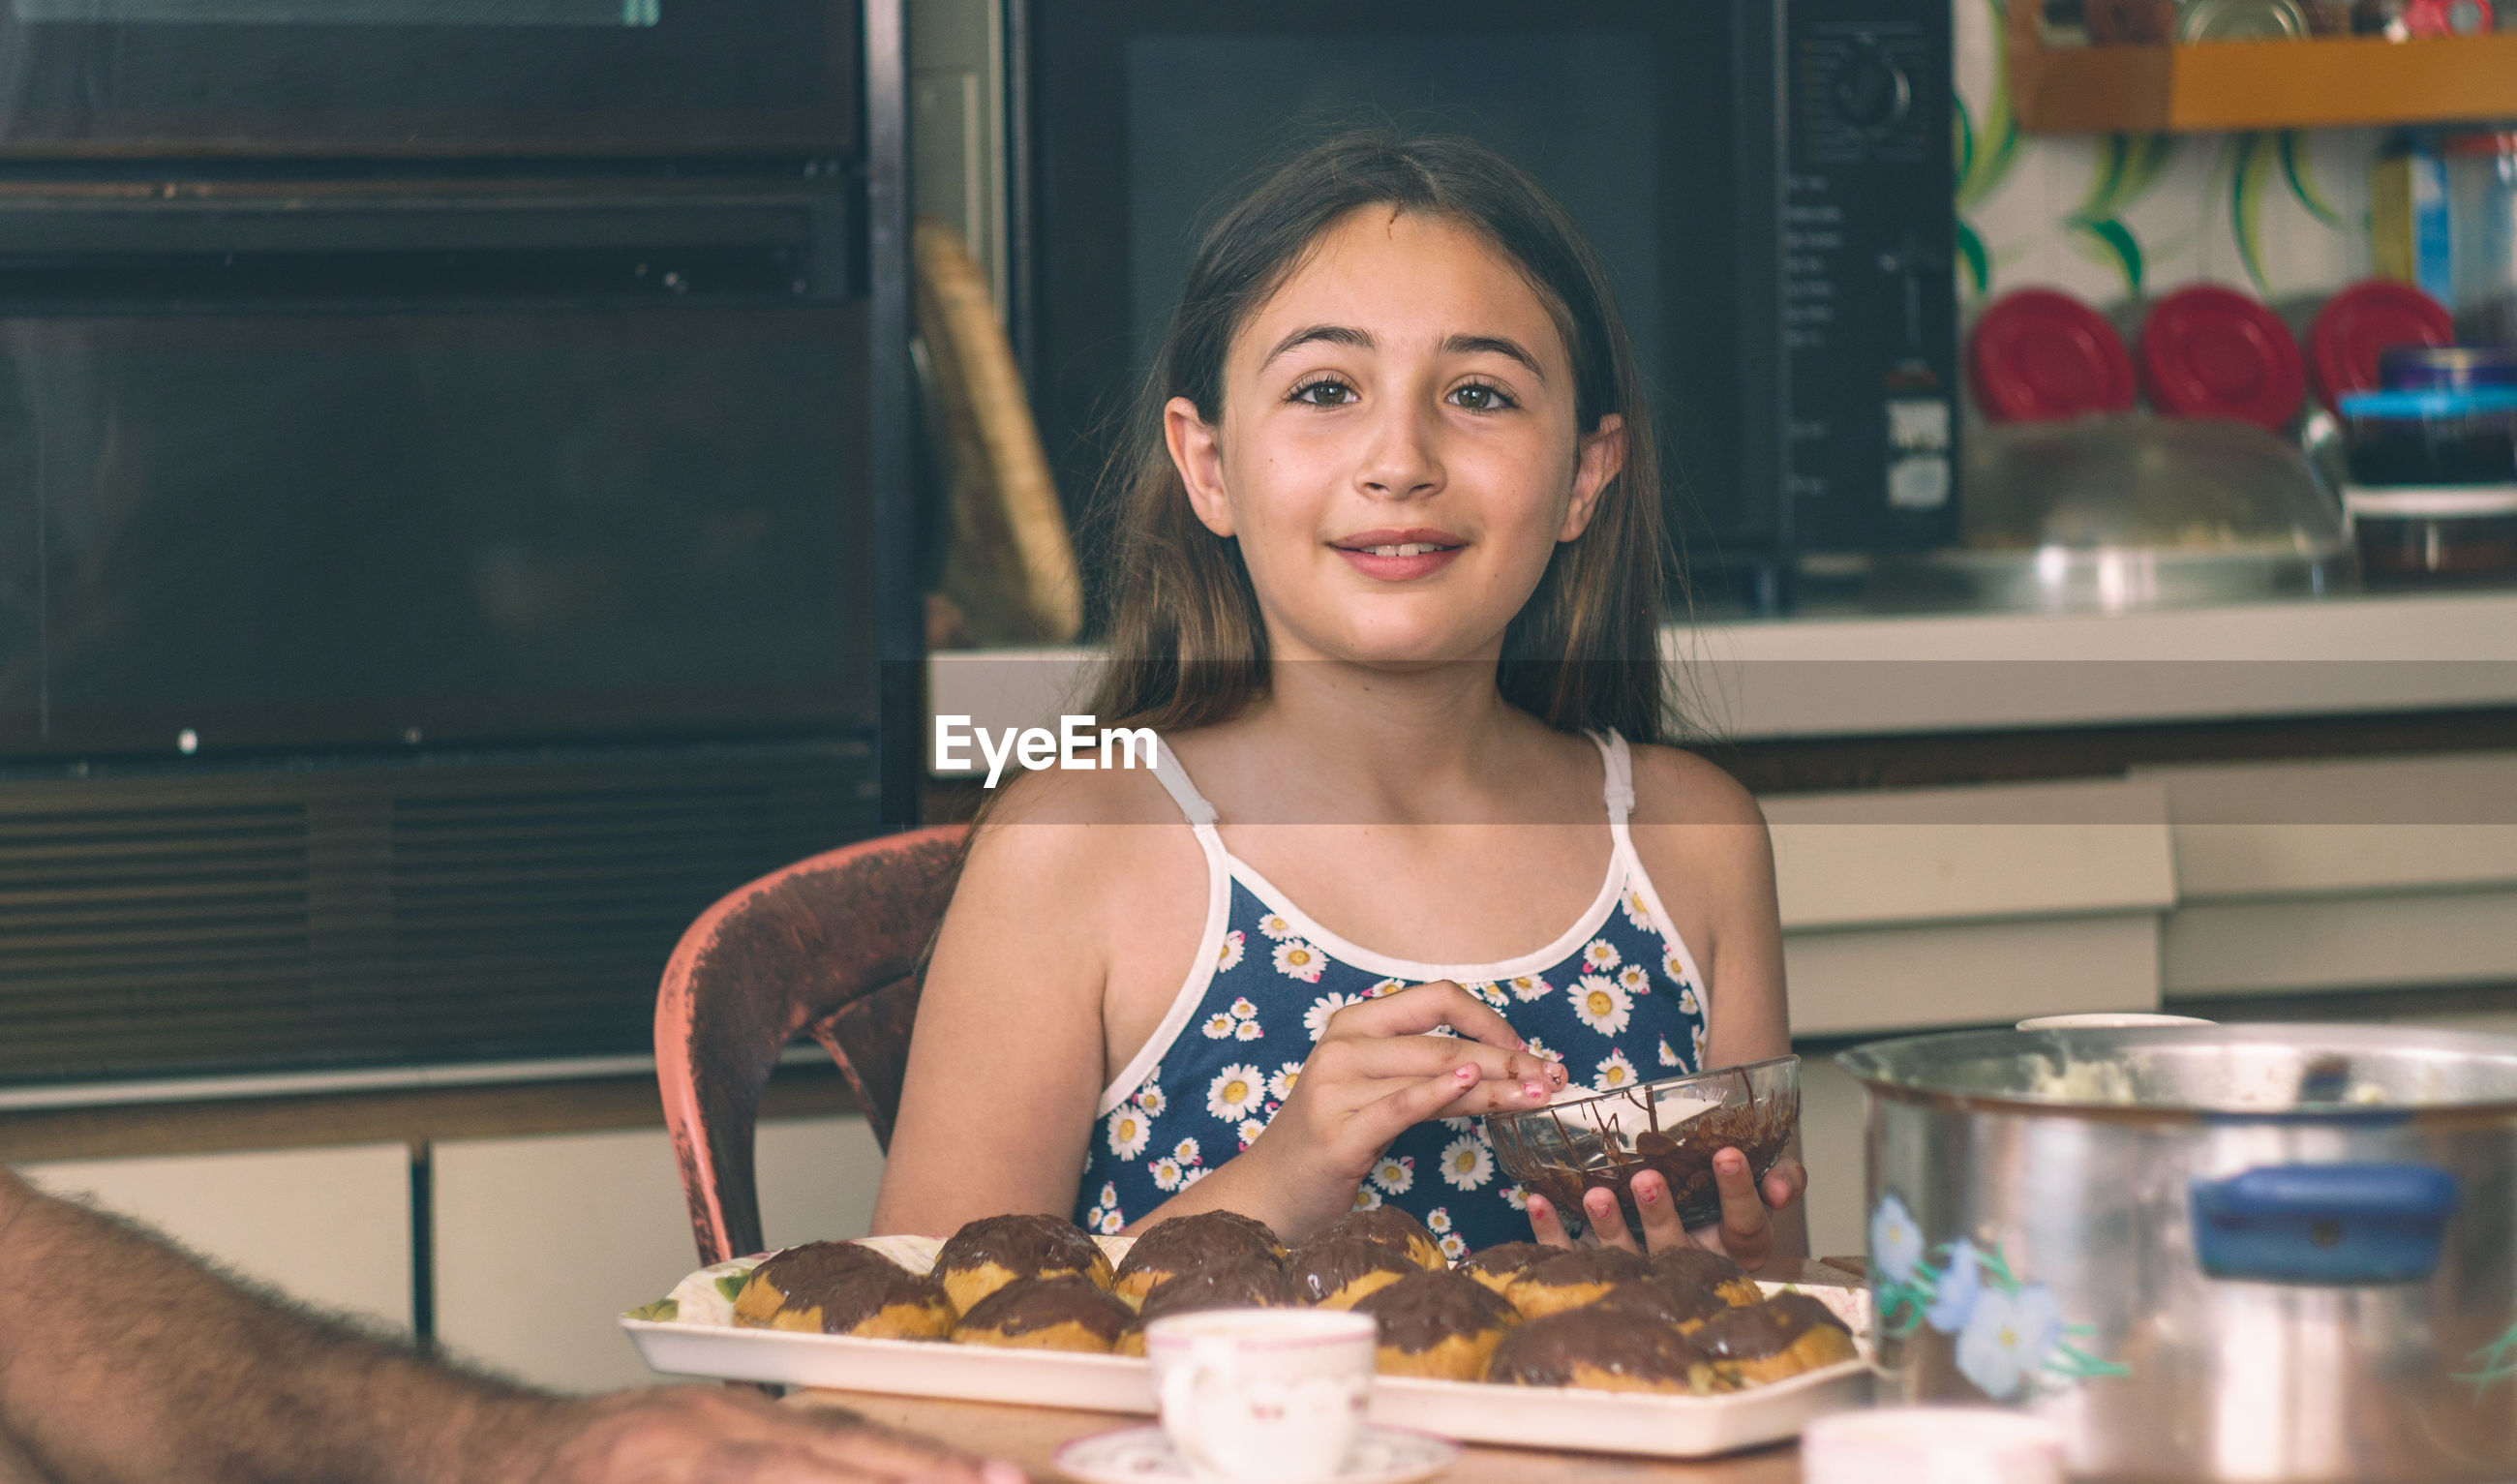 Portrait of girl preparing sweet food in kitchen at home